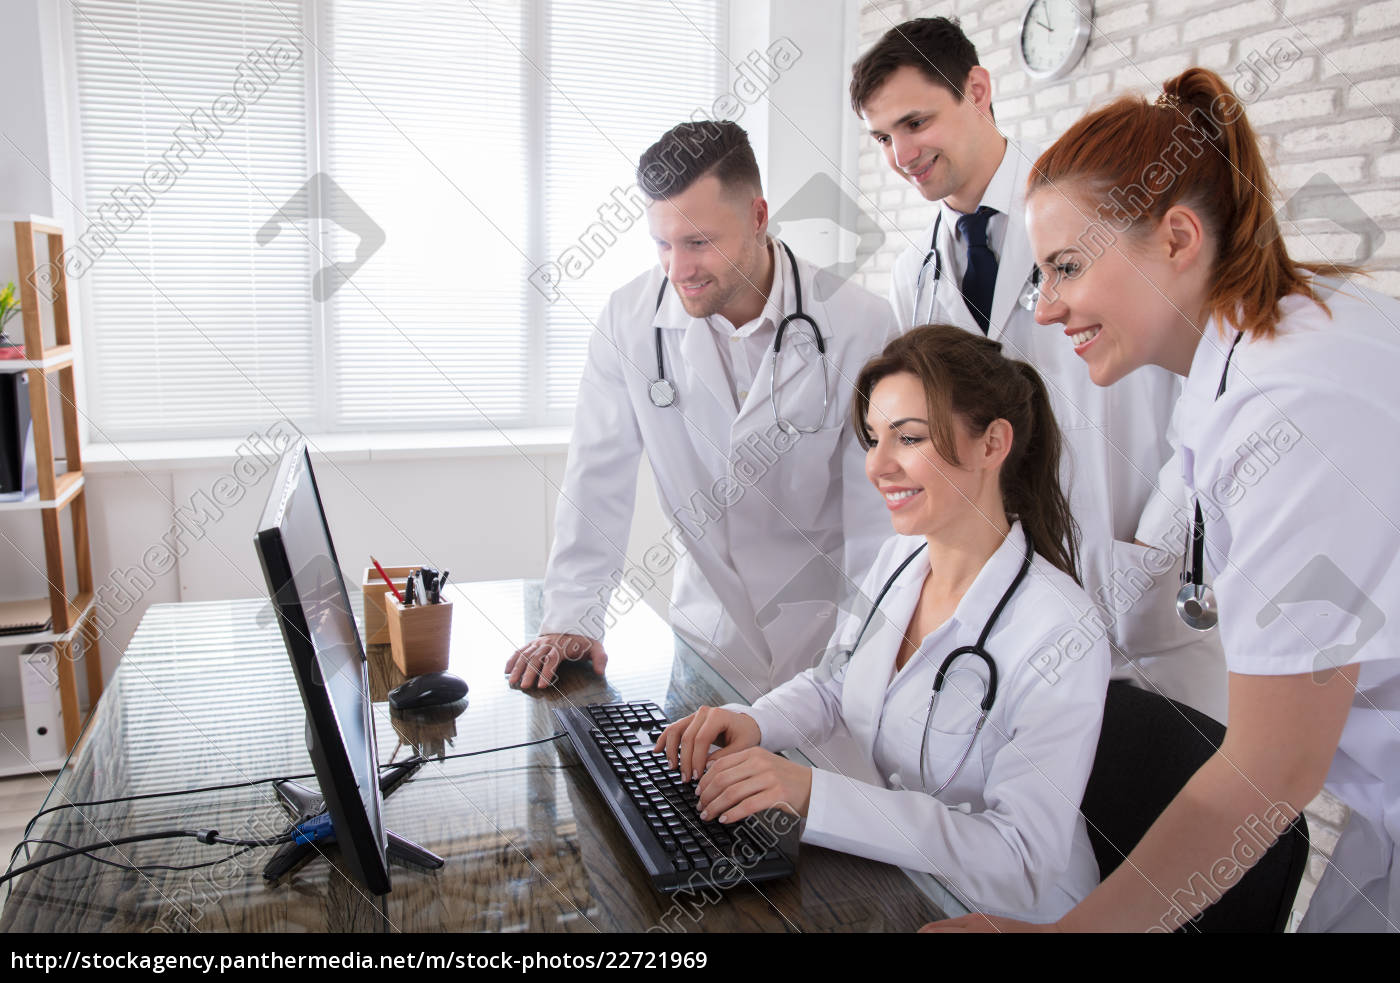 group, of, doctors, looking, at, computer - 22721969